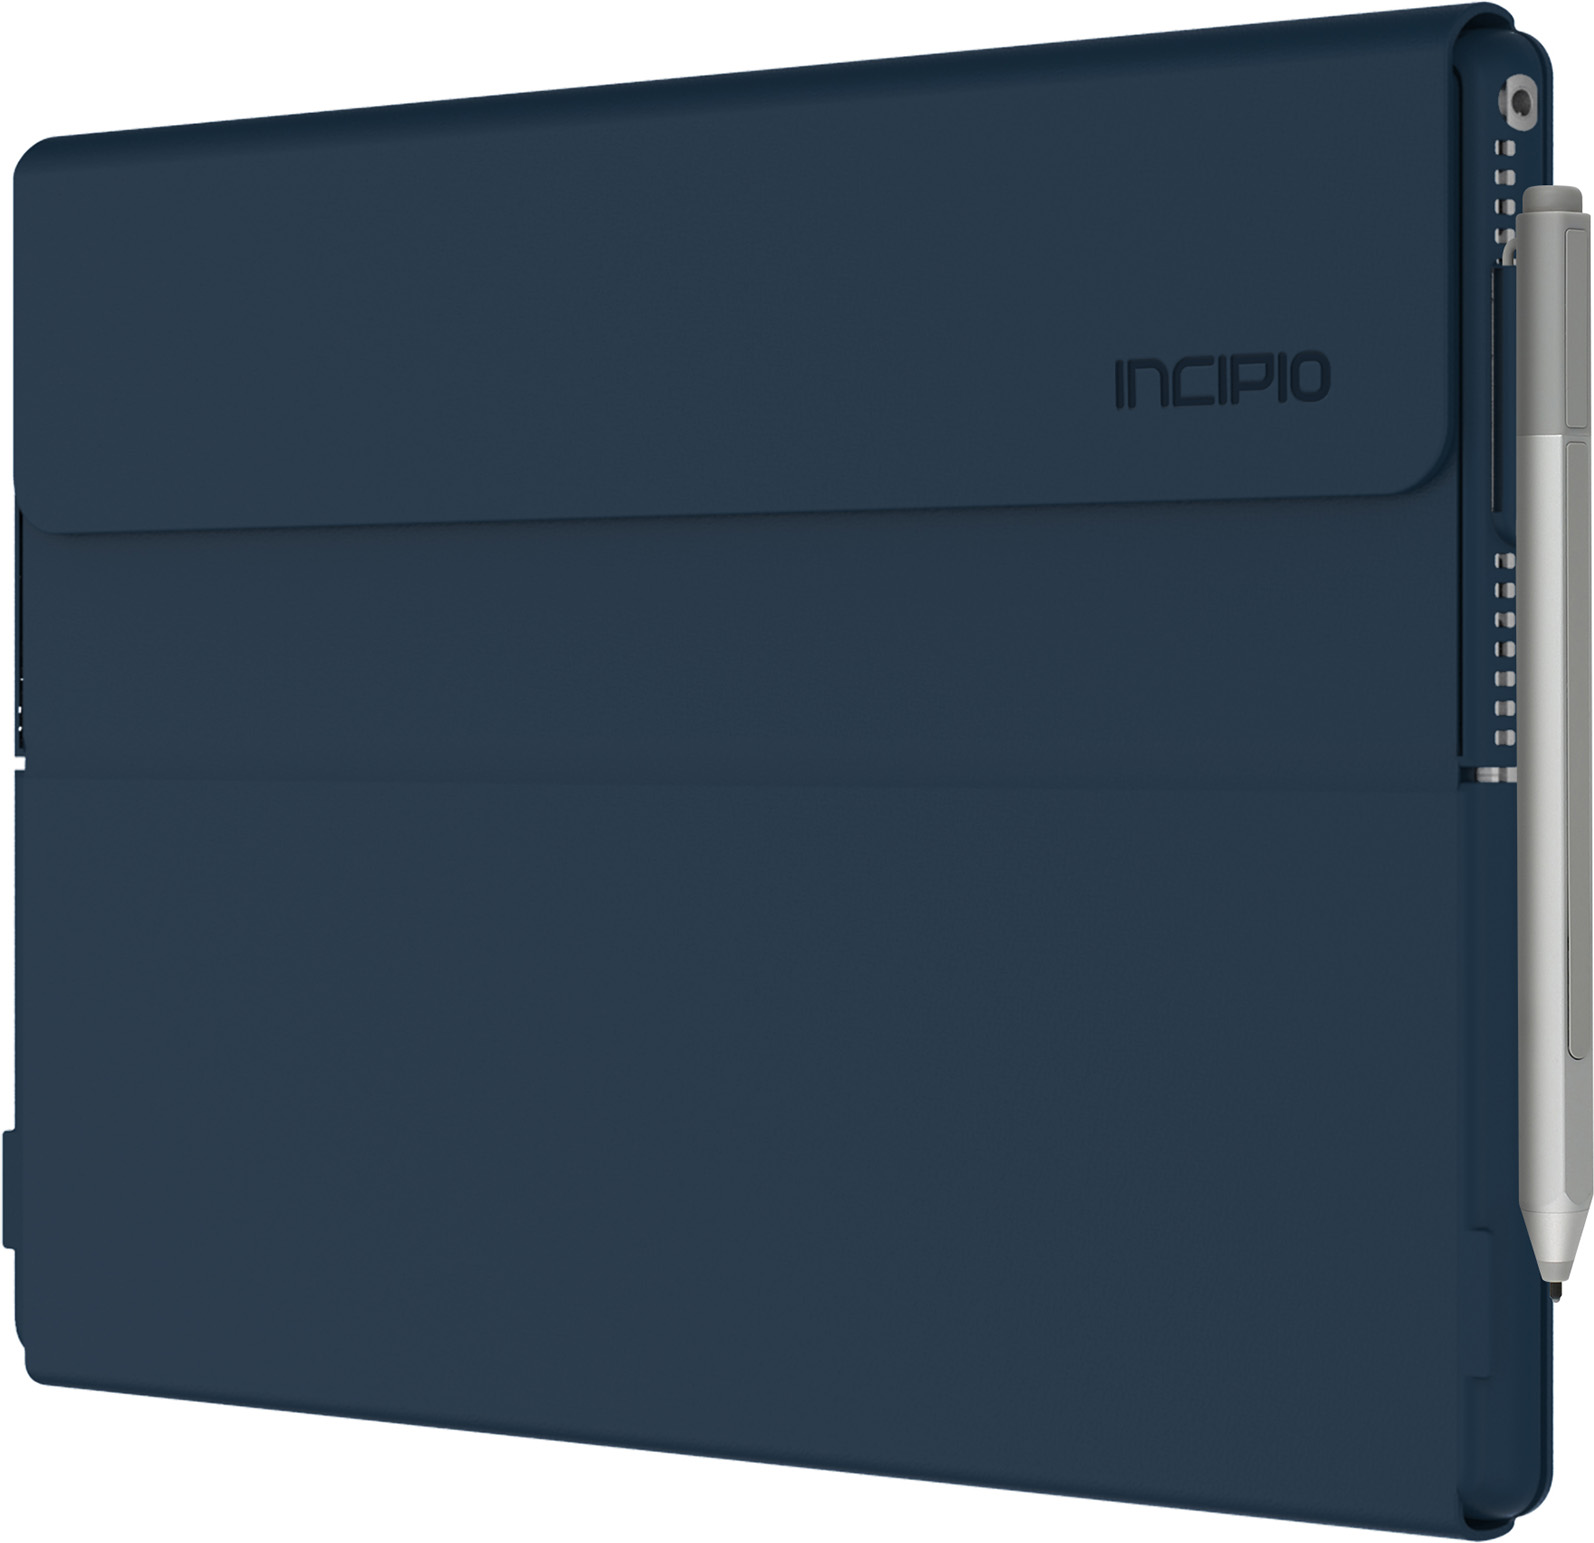 incipio-faraday-slim-folio-for-surface-pro-cobalt